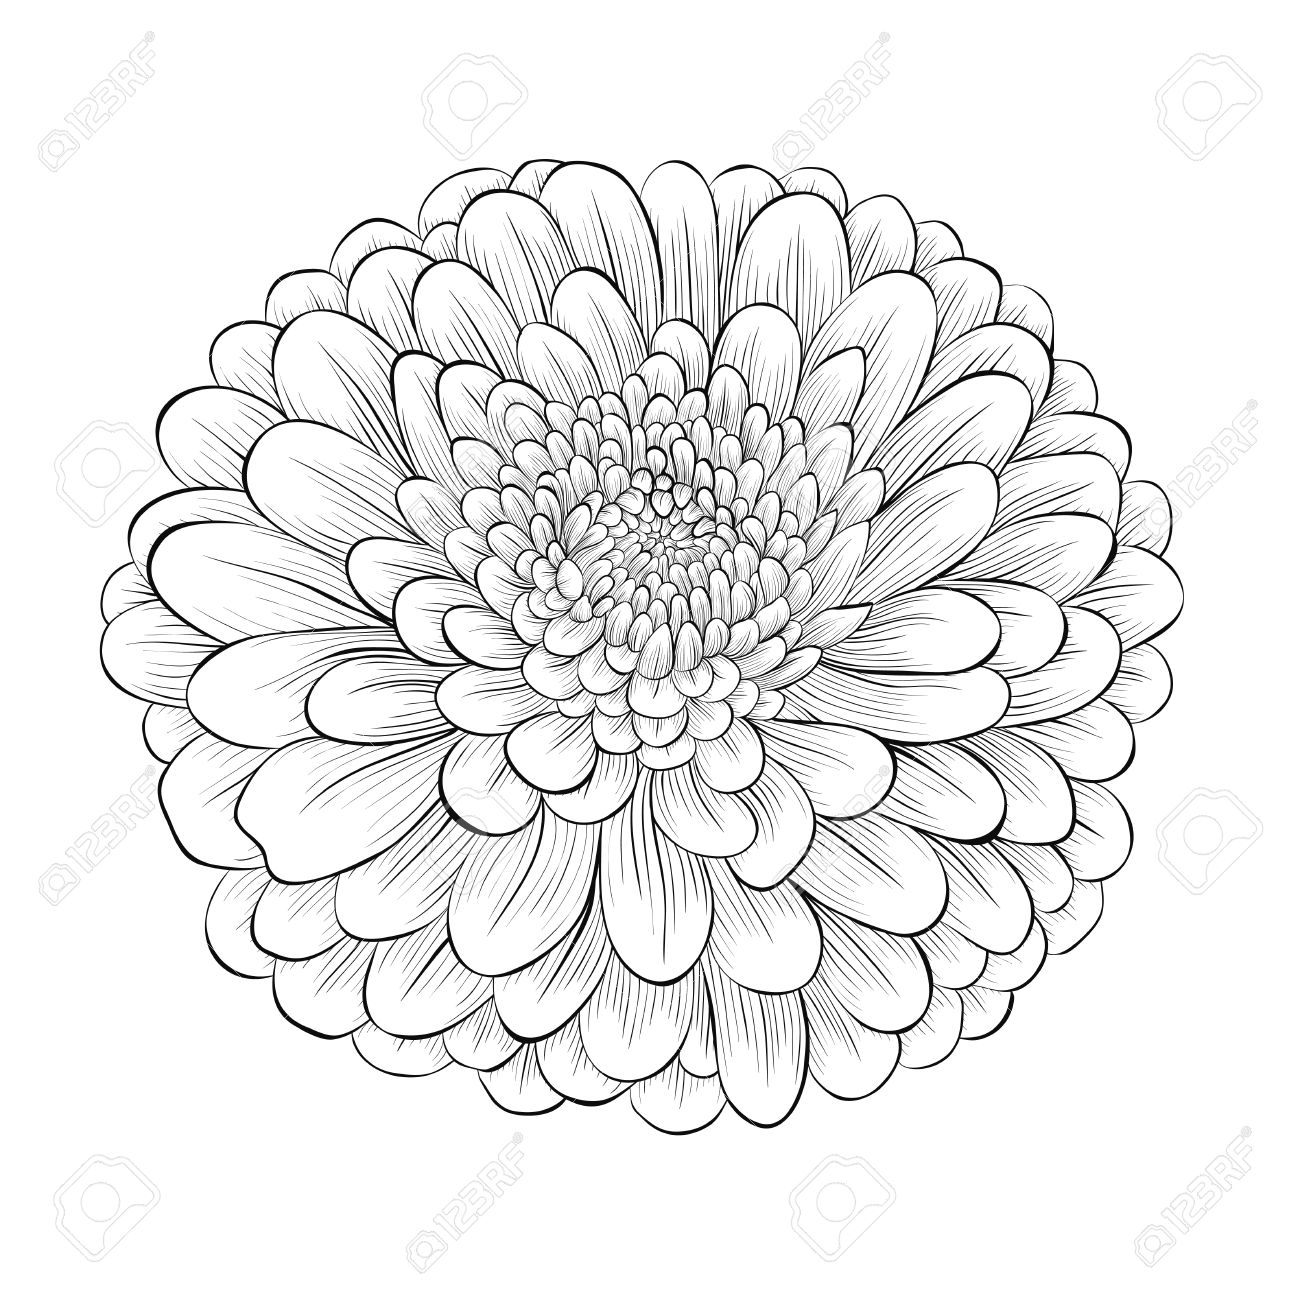 beautiful monochrome black and white flower isolated on white